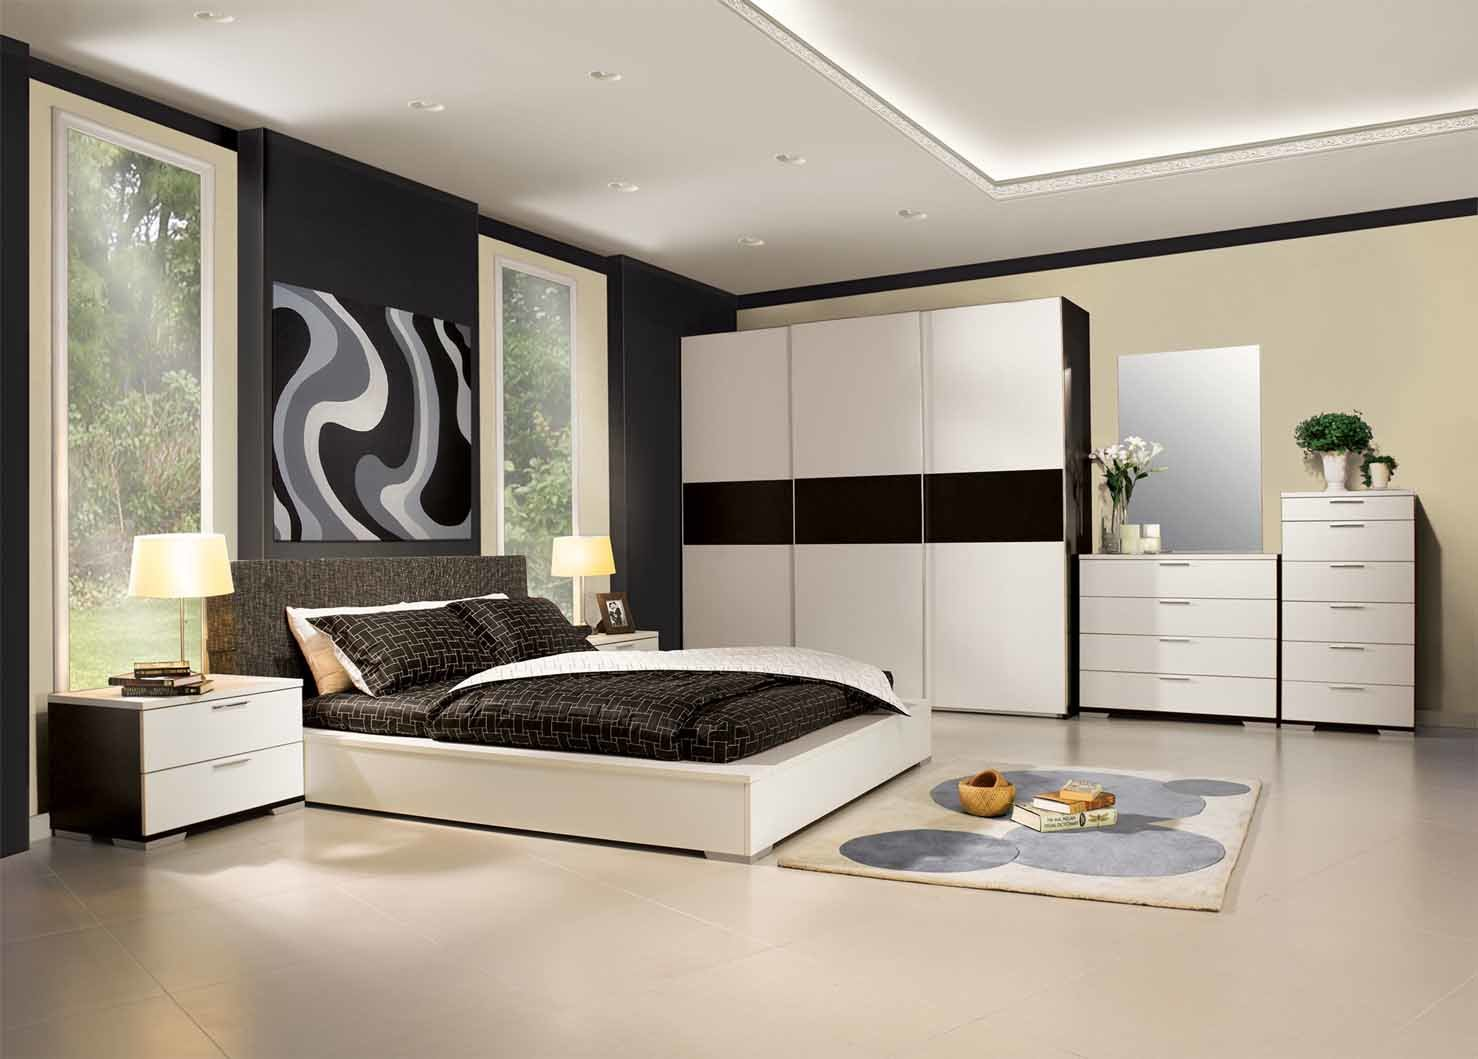 Best Decoration Ideas For Apartments Bedrooms Home June 2013 With Pictures